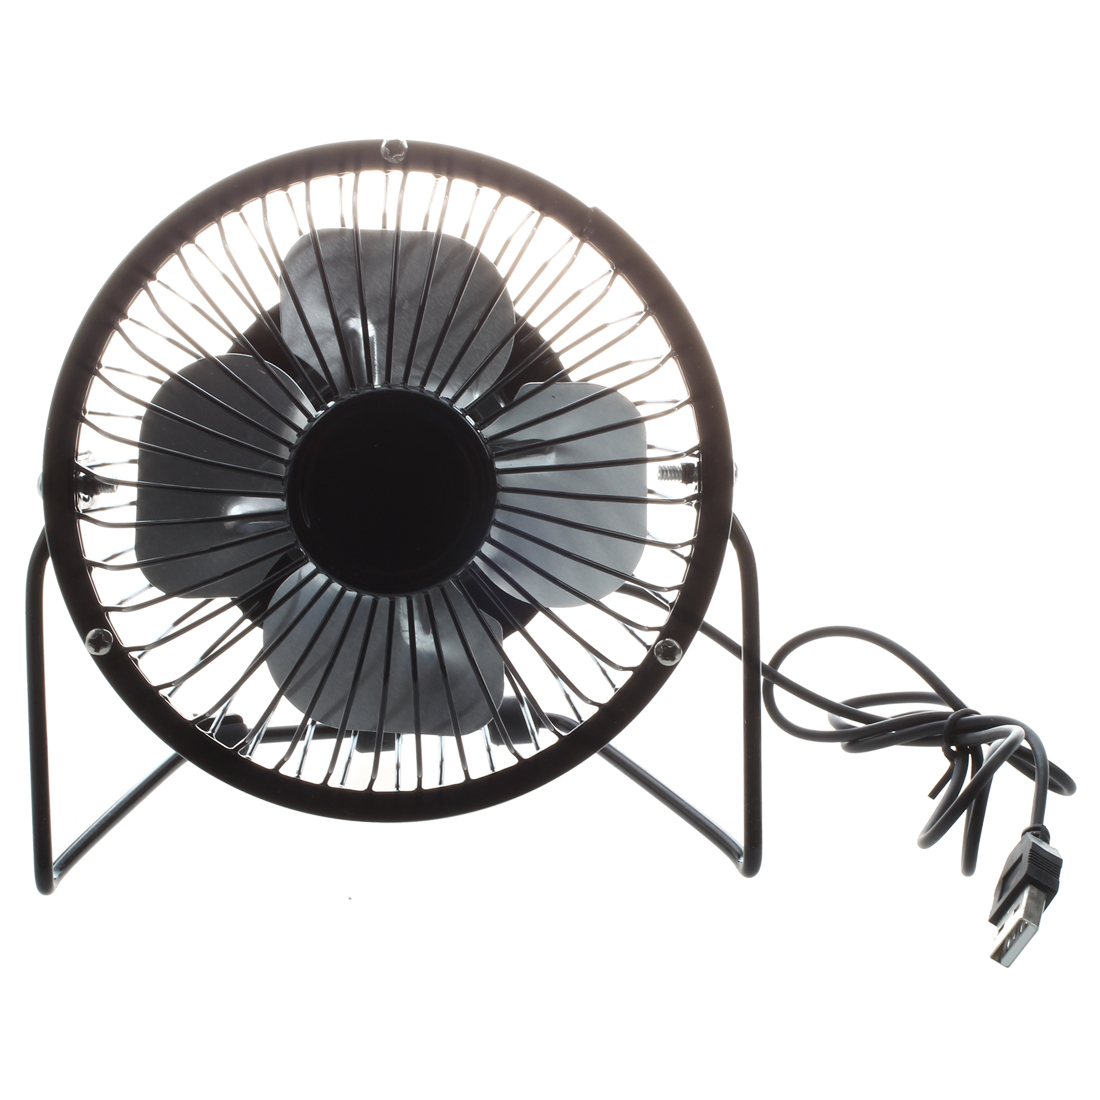 4-inch 360-degree Rotating Usb Powered Metal Electric Mini Desk Fan For Pc /laptop /notebook black Colours Are Striking